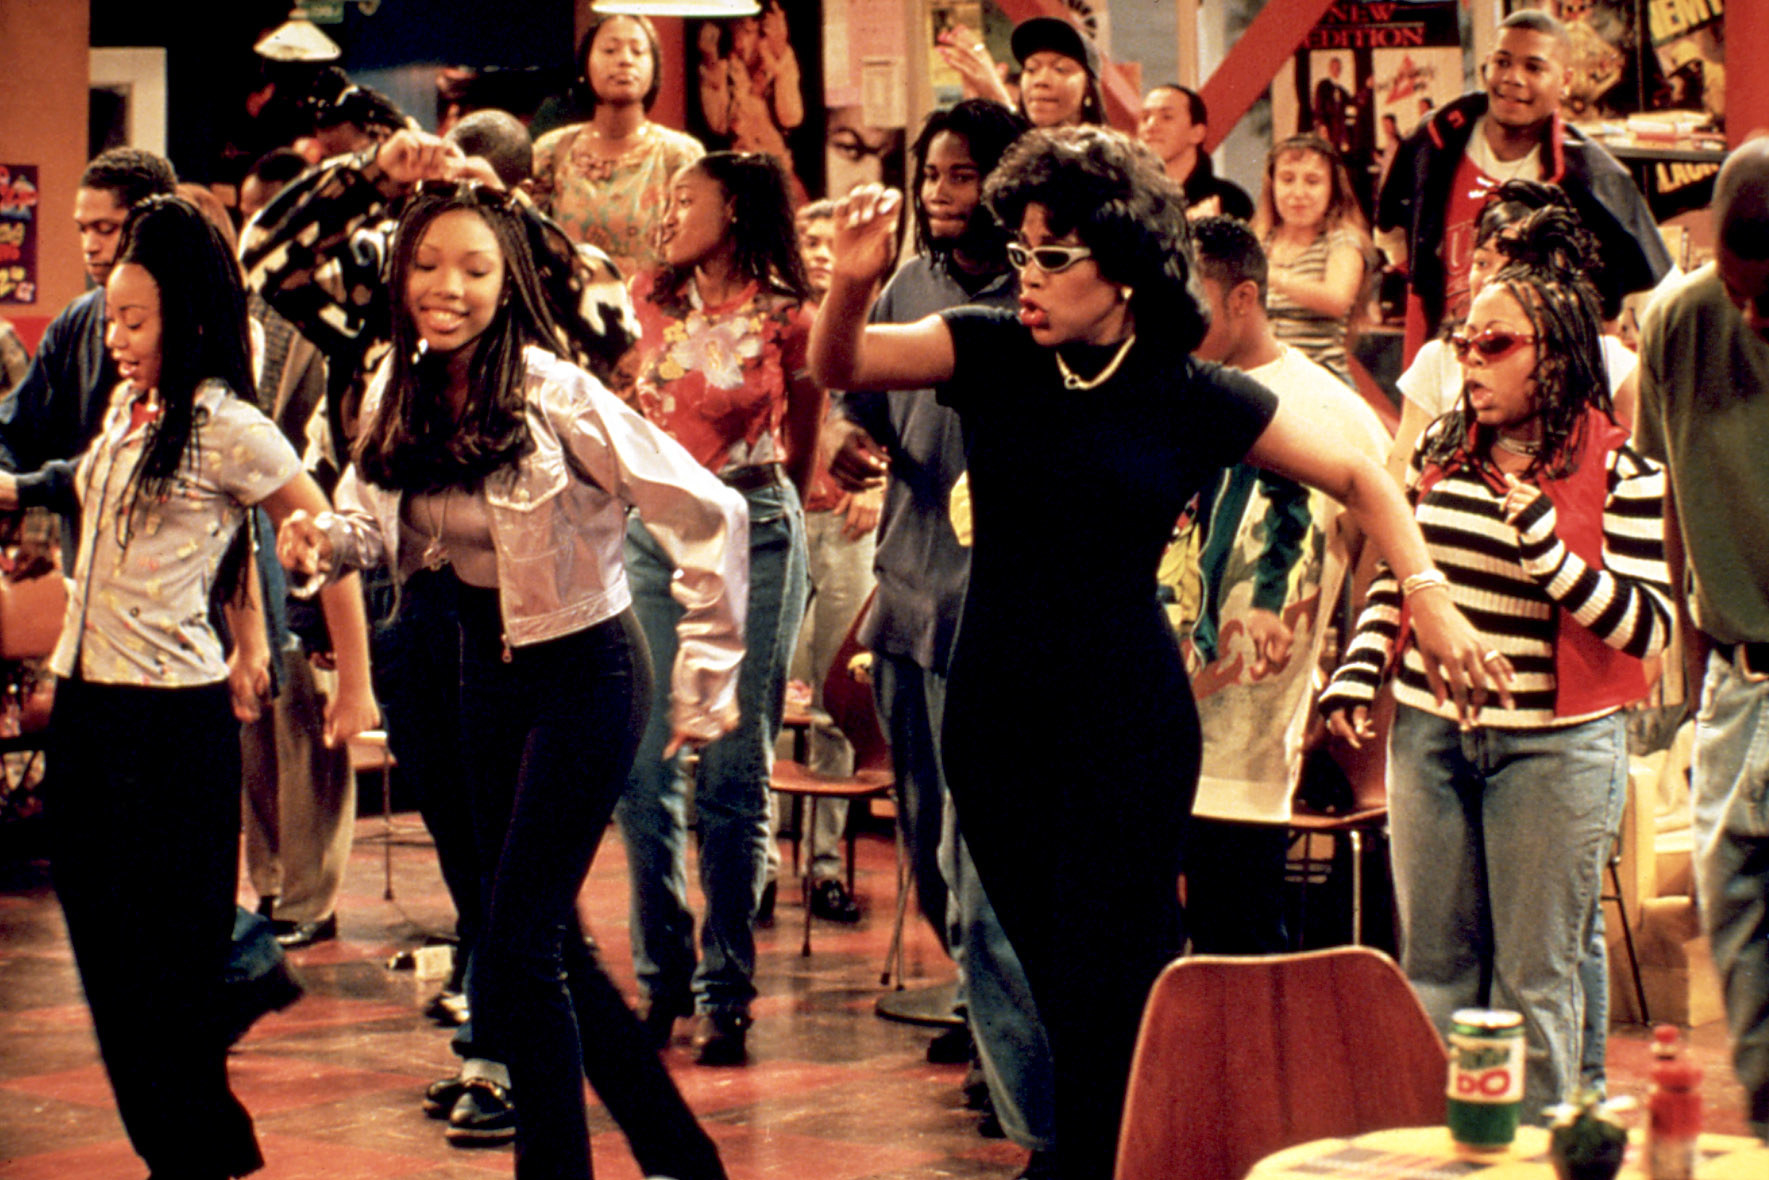 a still of Brandy Norwood as Moesha Mitchell, Sheryl Lee Ralph as Dee Mitchell and Countess Vaughn as Kim Parker dancing on the set of Moesha